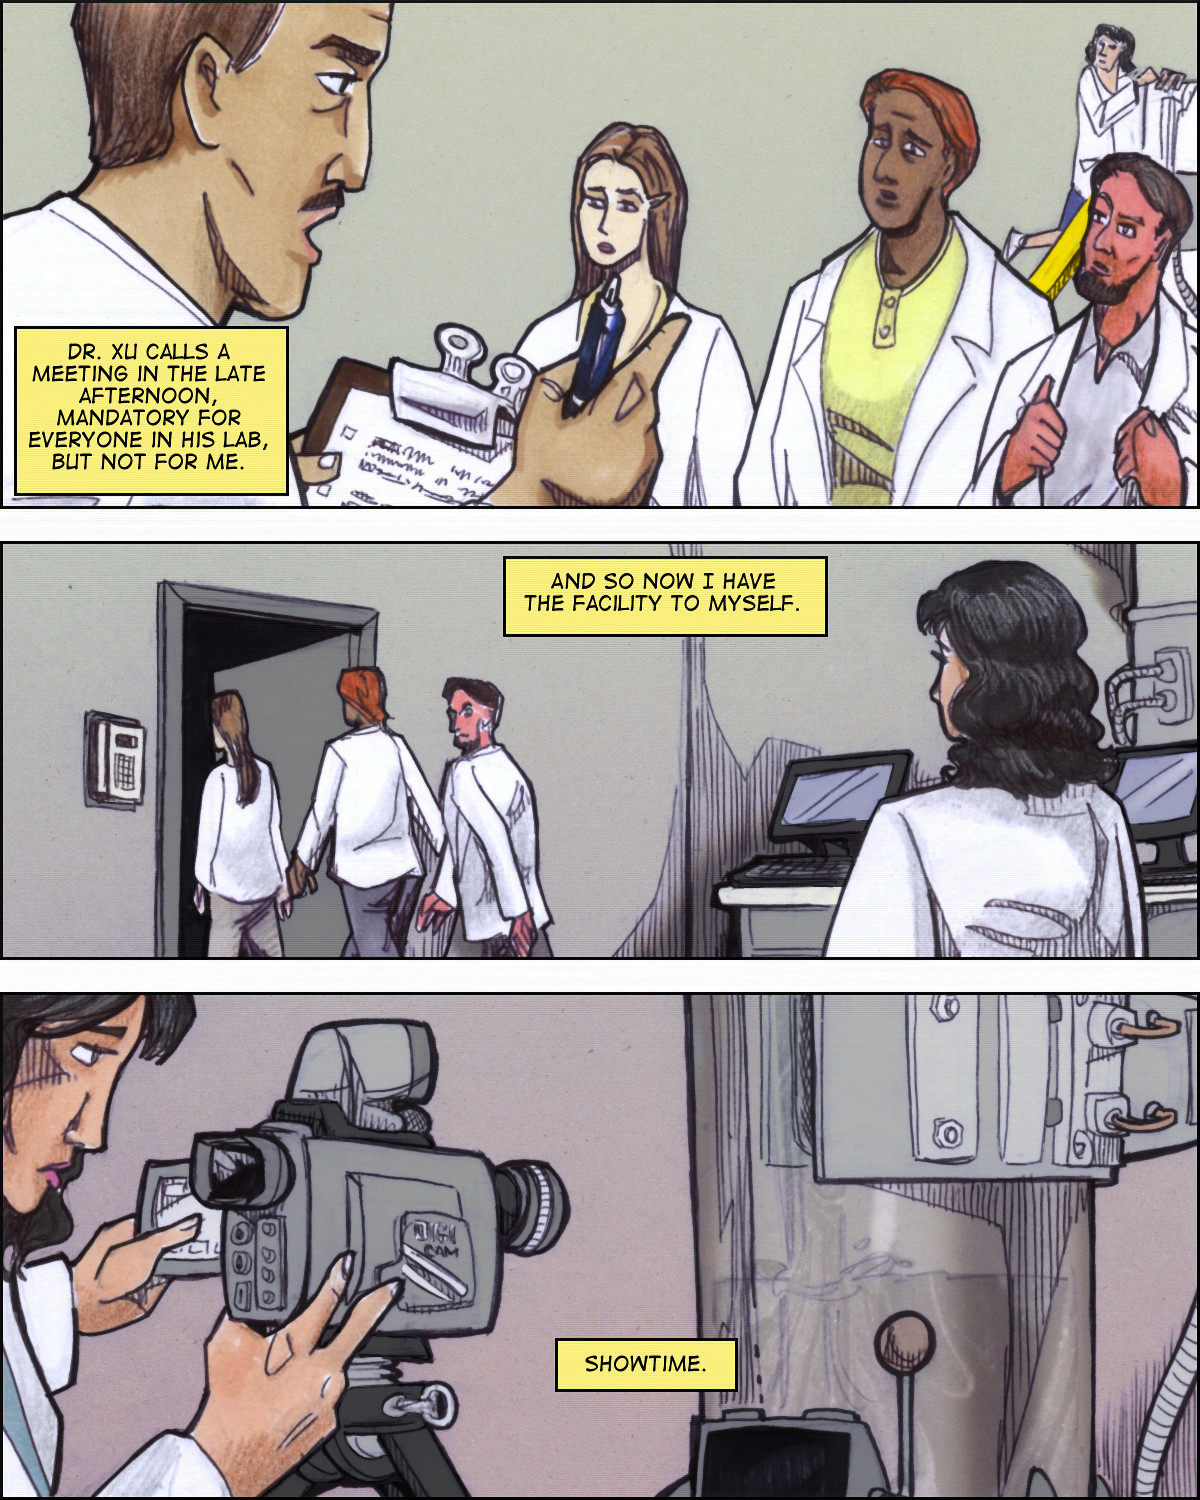 Hope is 'unwisely' left alone in the lab.